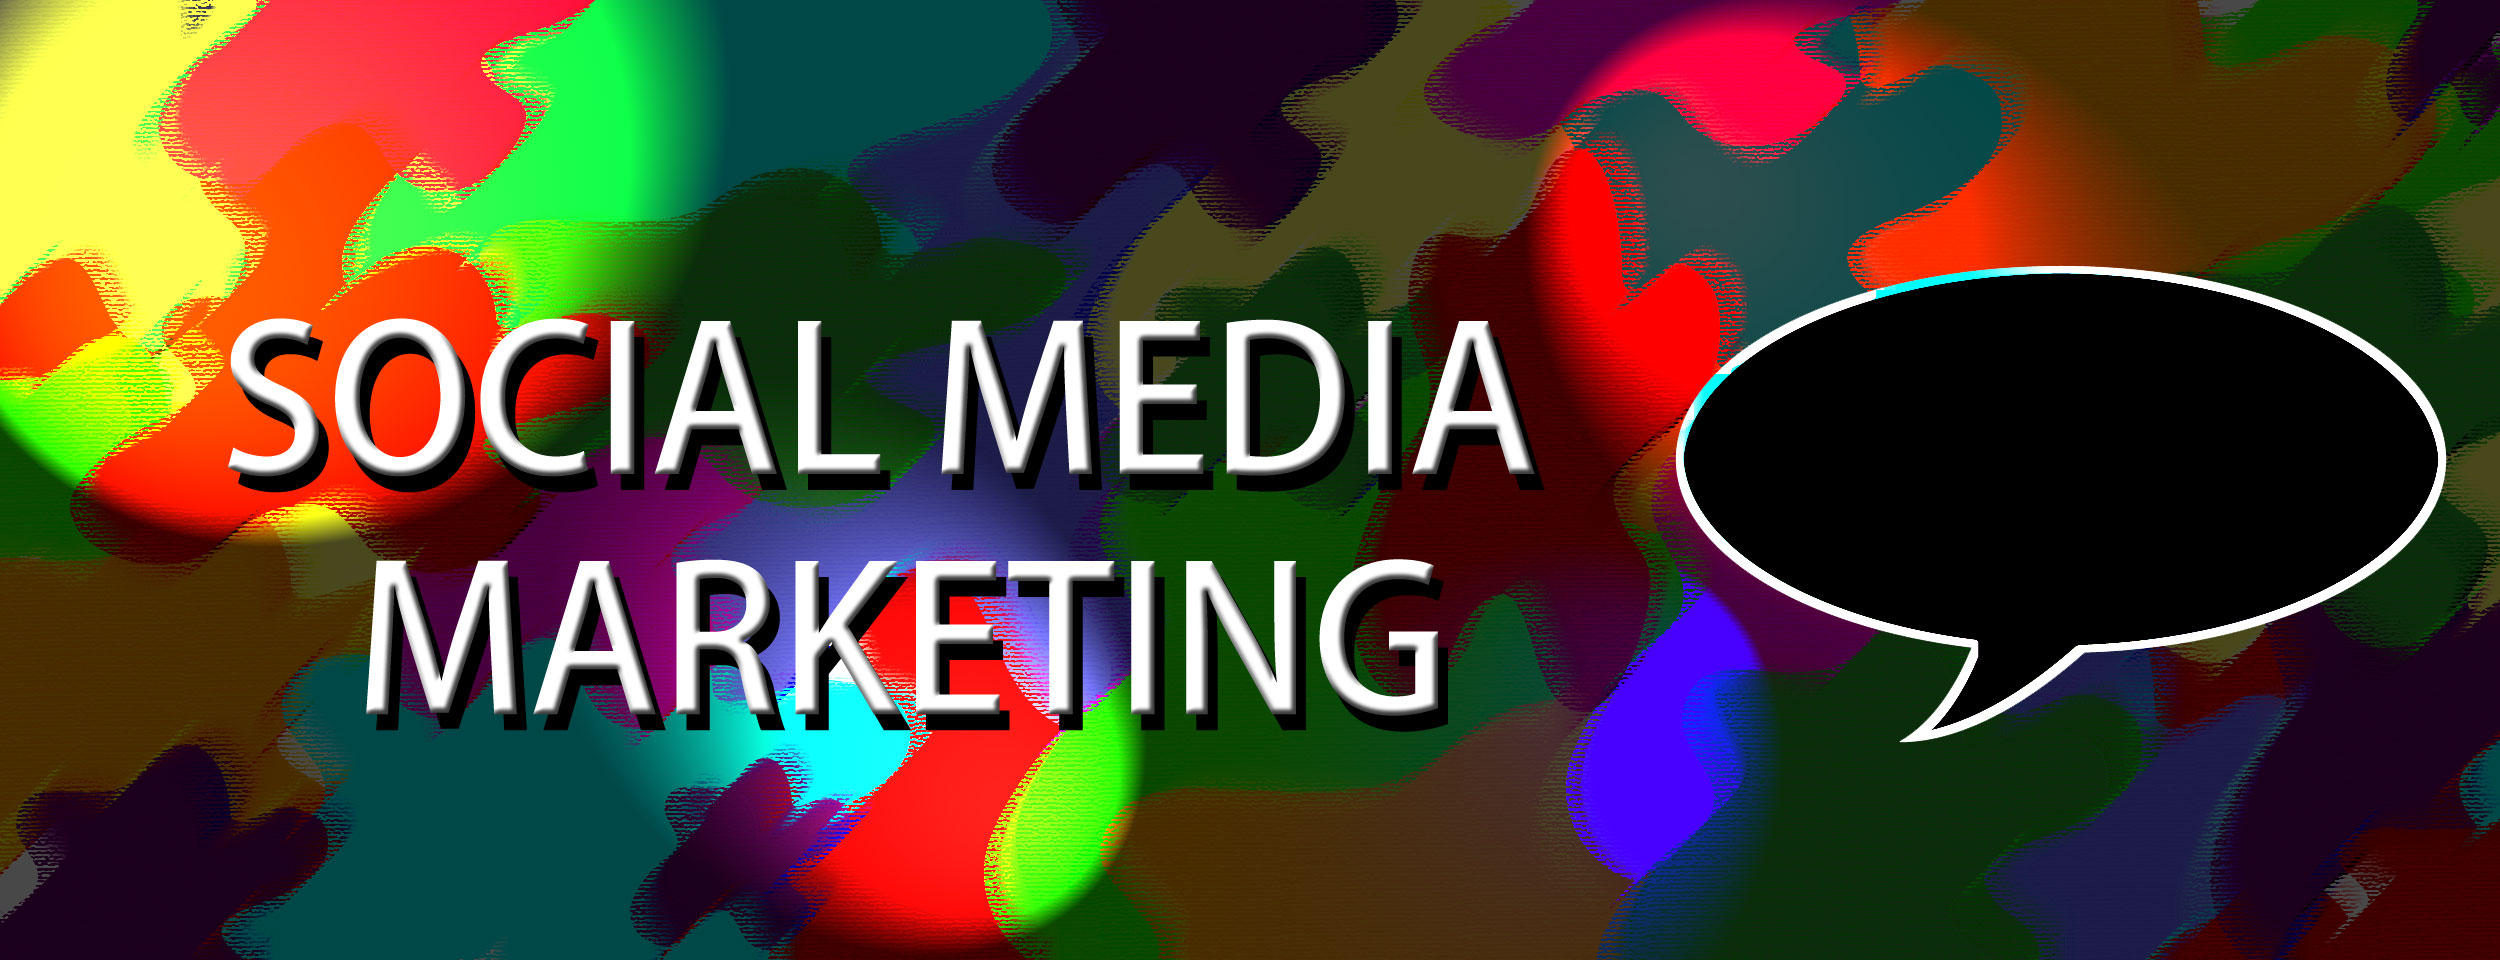 Should I Hire a Social Media Marketer?